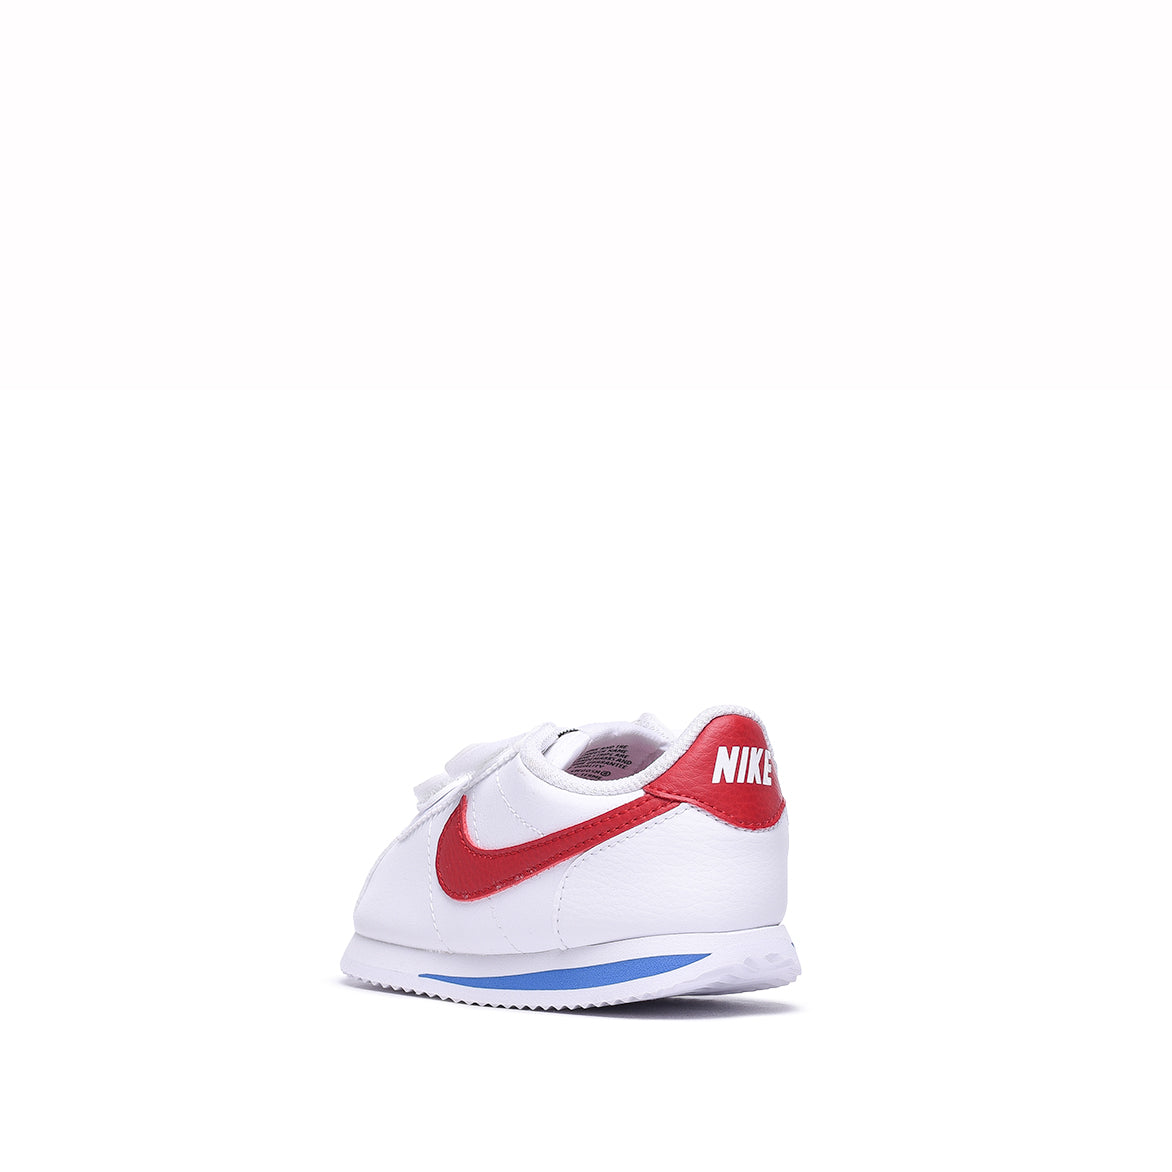 CORTEZ BASIC SL (TD) - WHITE / VARSITY RED / GAME ROYAL